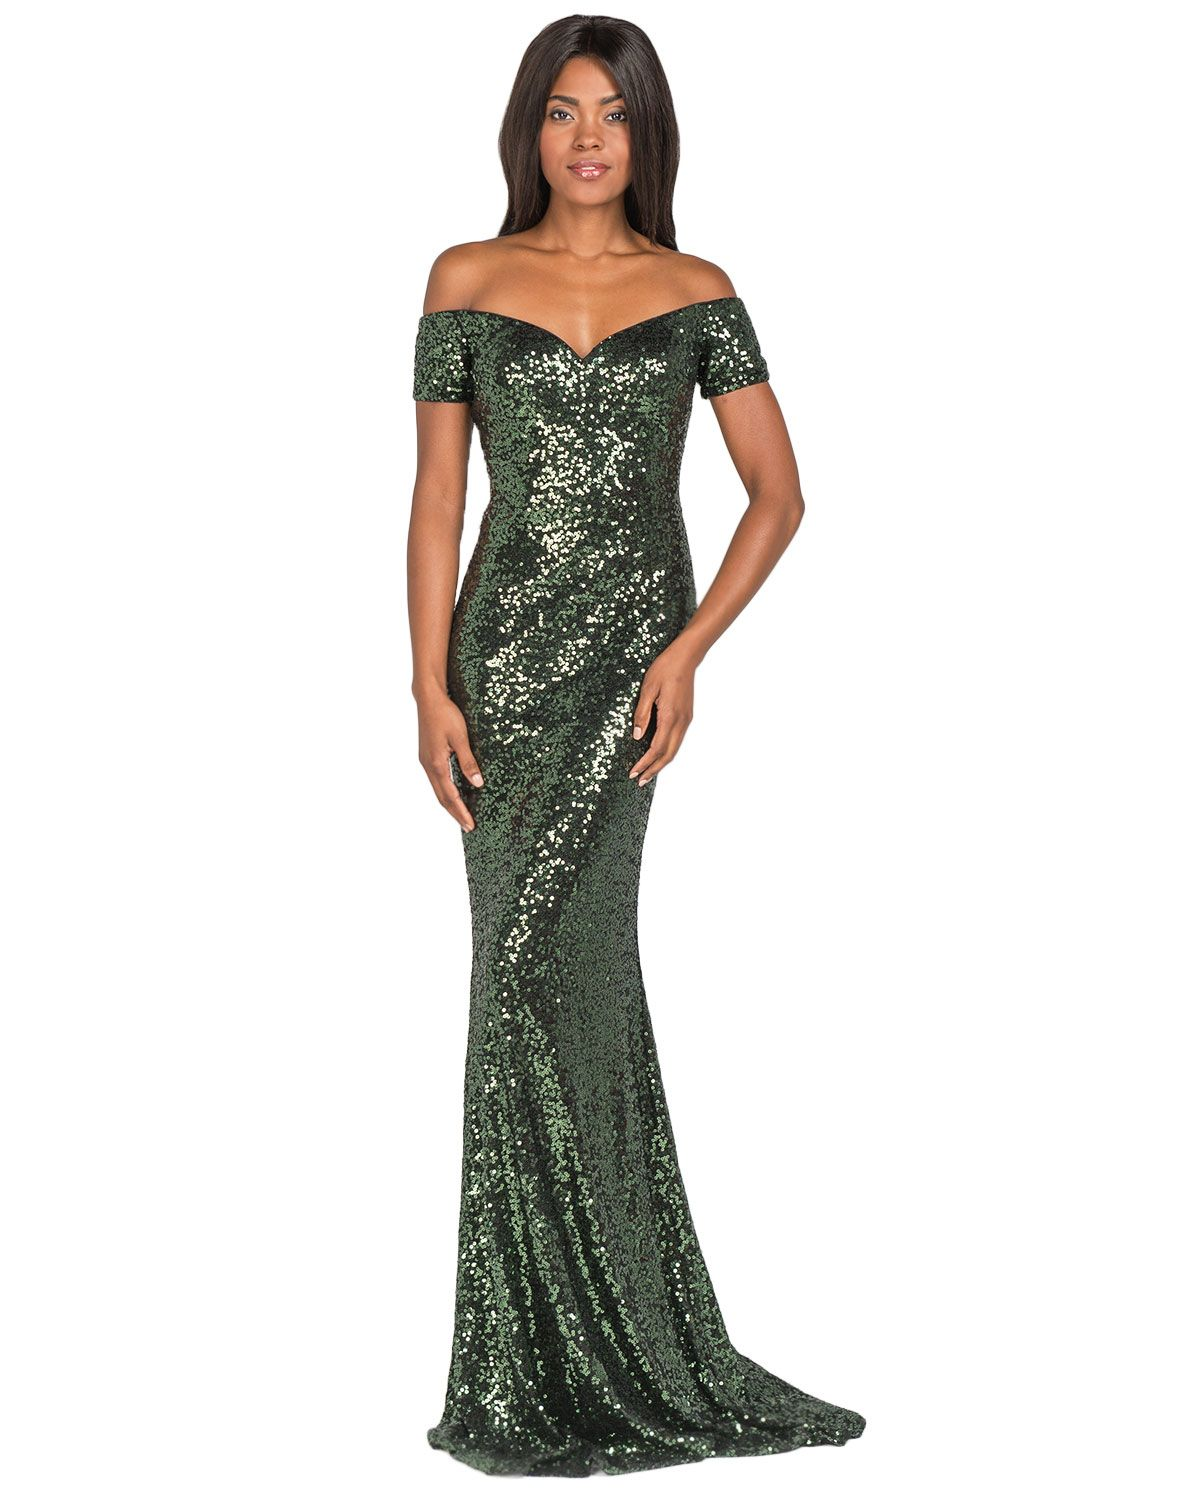 Badgley Mischka EG2042 Off-Shoulder Sequin Gown, now available at ...